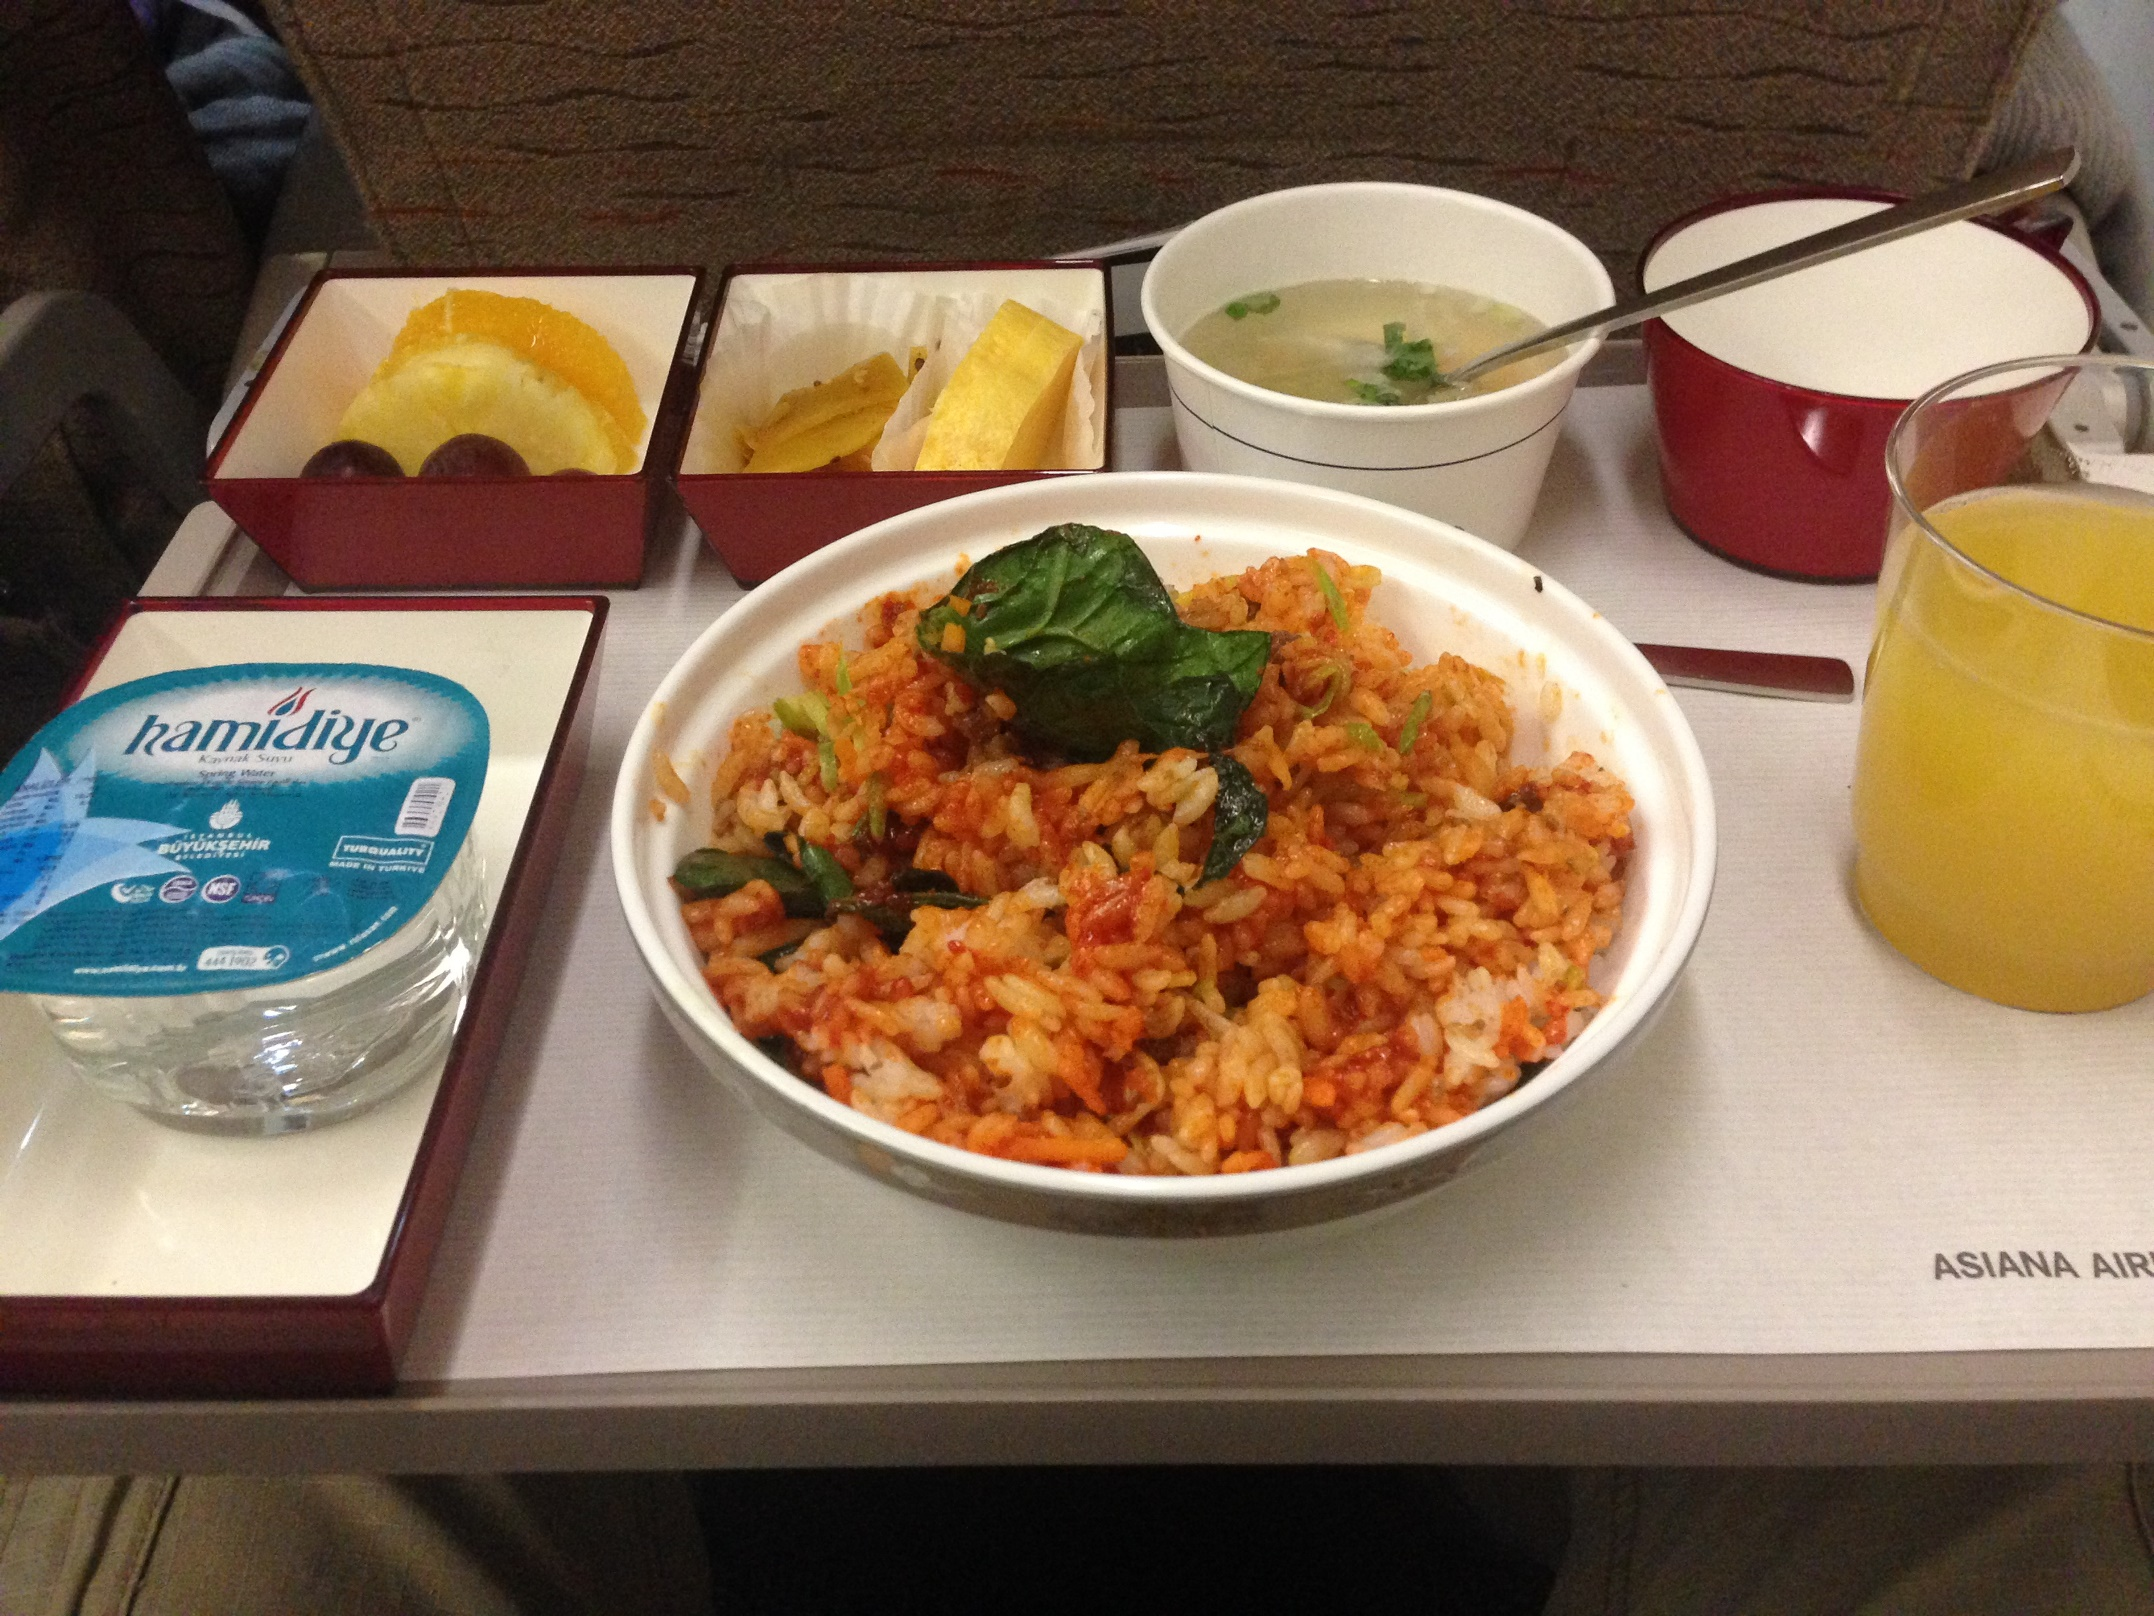 Asiana Airlines_Istanbul-Seoul_Economy Class_Jan 2016_014